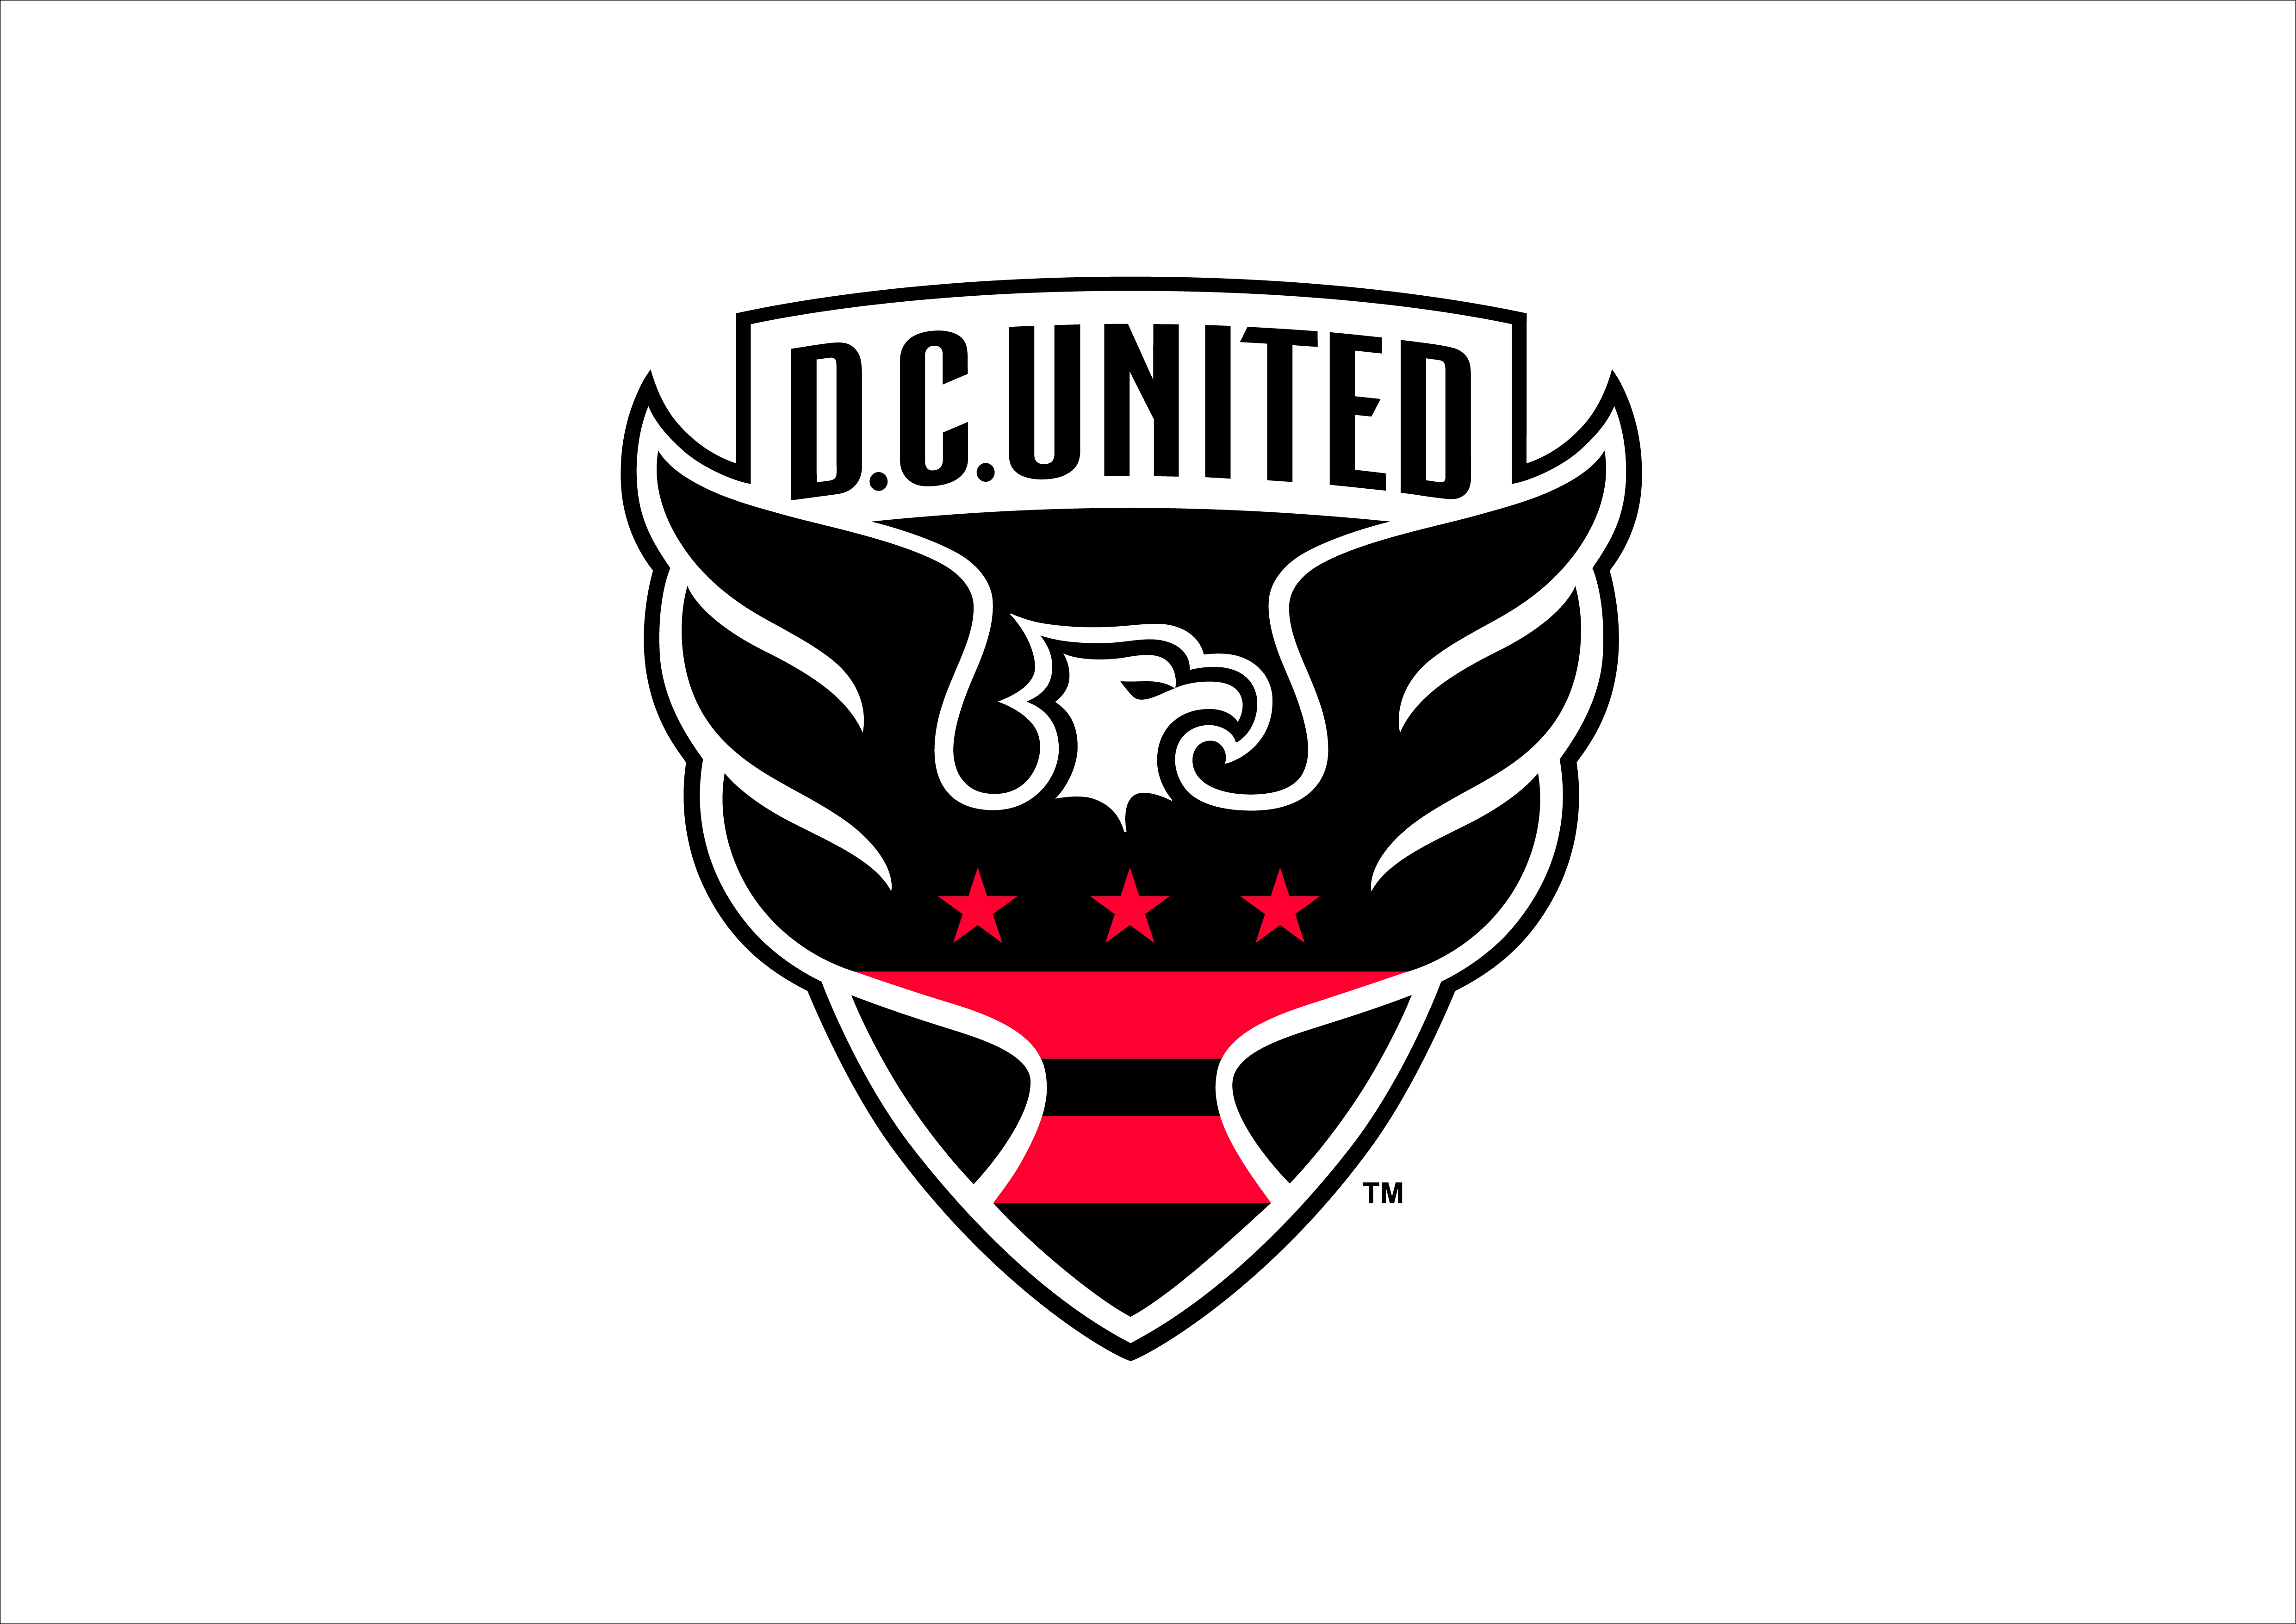 D.C.United logo COLOUR a-w